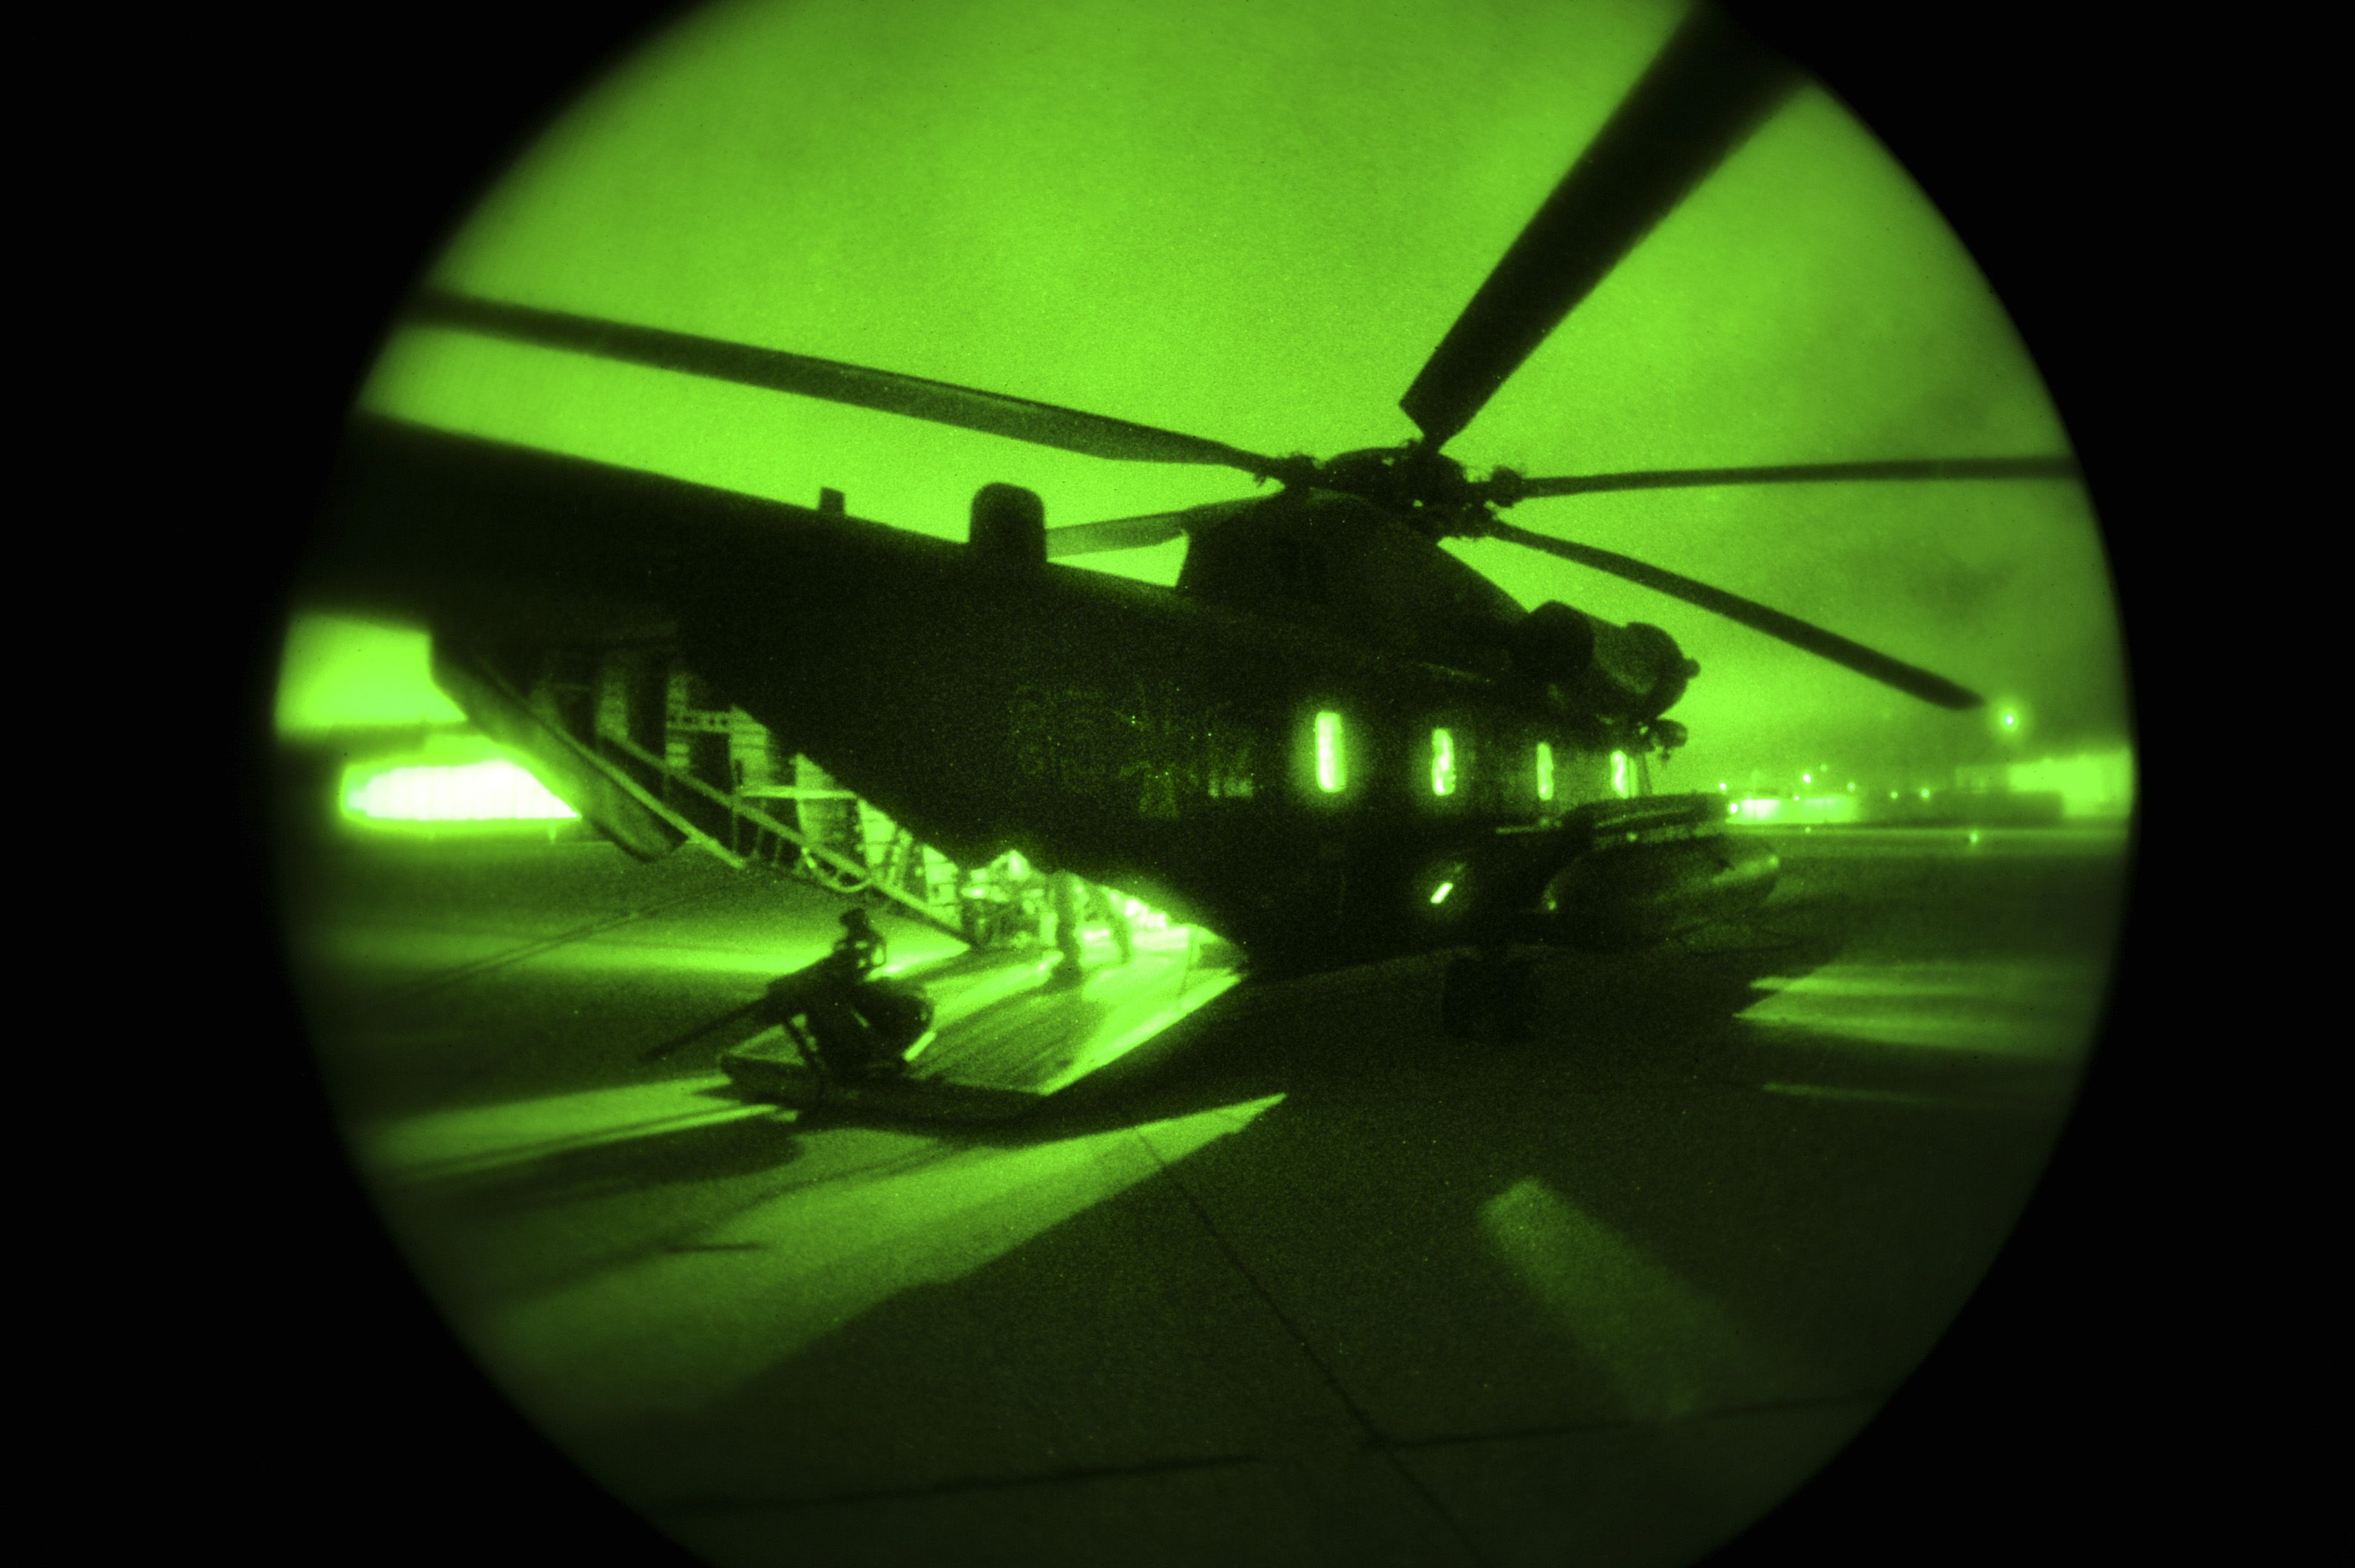 A German Air Force CH-53GS waits to be refueled at Naval Air Station North Island, Calif., during Angel Thunder 2015, June 7, 2015. Angel Thunder is the world's largest personnel recovery exercise. D-M hosted 11 partner nations and nine interagencies with a common goal to train personnel recovery forces to prepare, plan, execute and adapt for rescue missions. (U.S. Air Force photo by Airman 1st Class Chris Massey/Released)